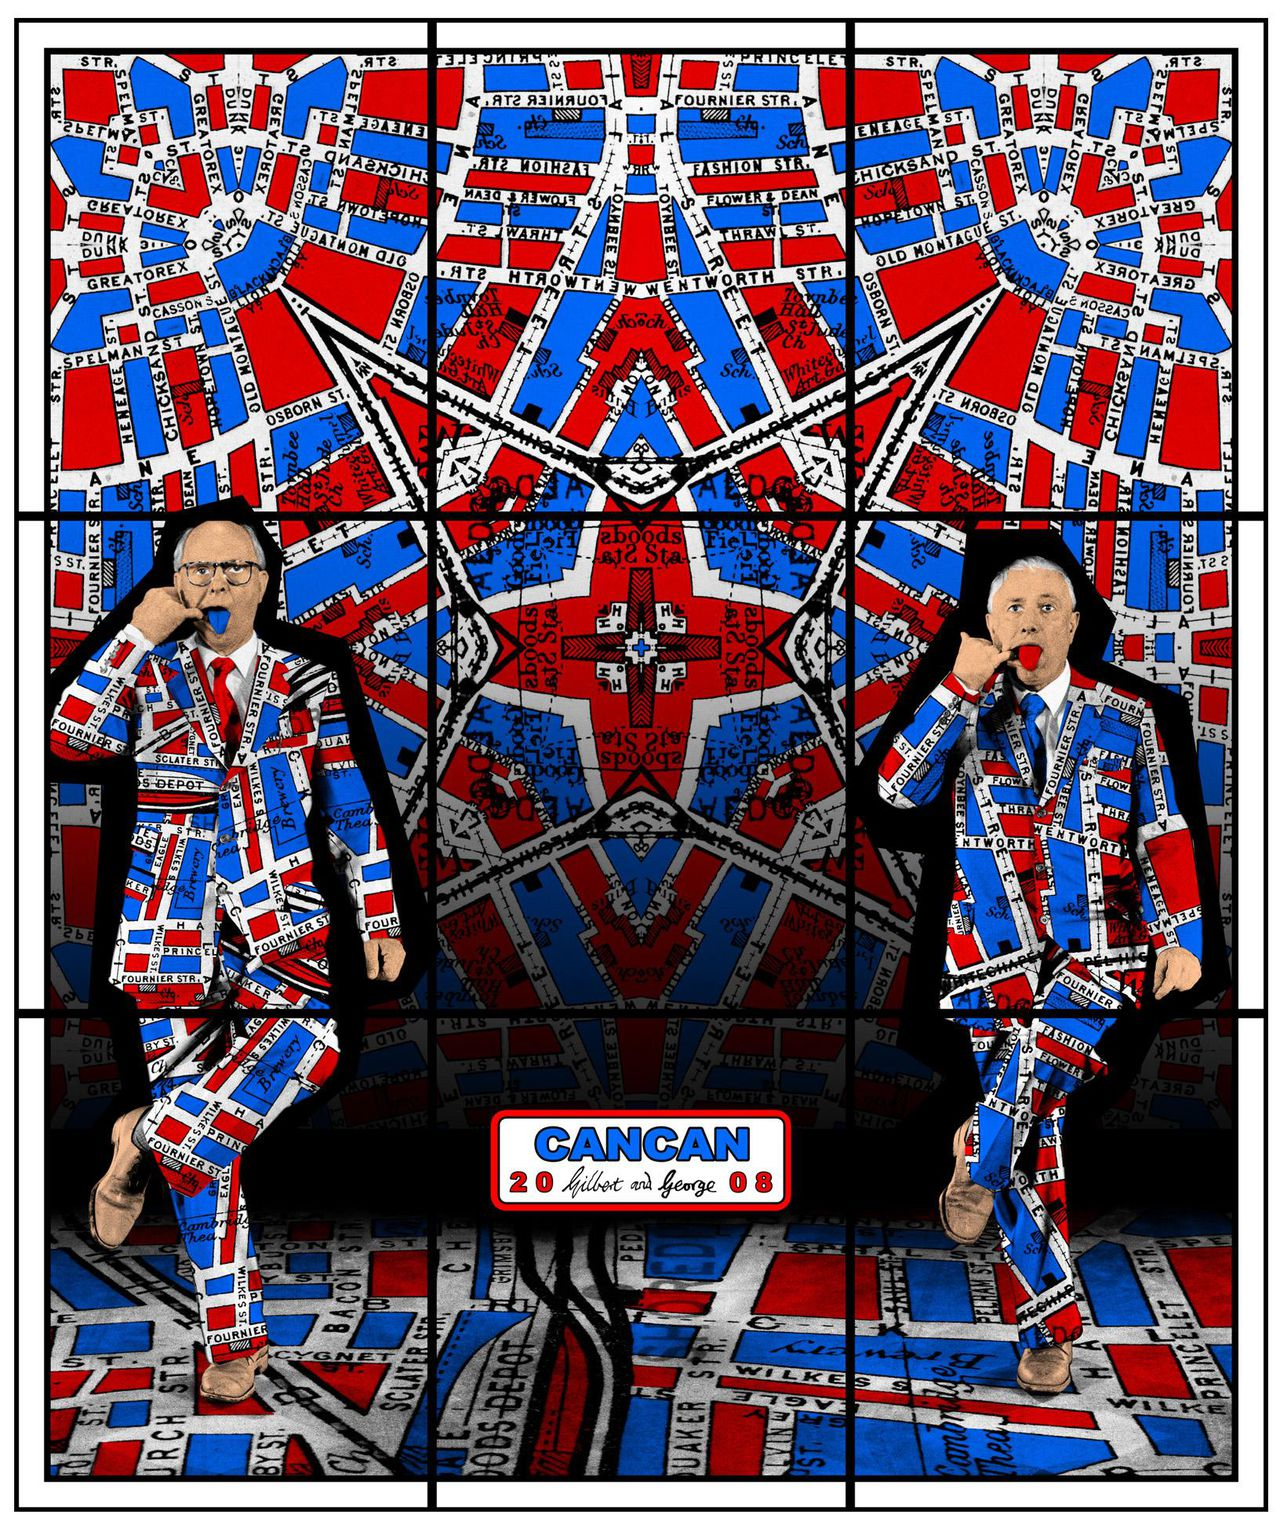 Gilbert & George: 'Can can', 2008